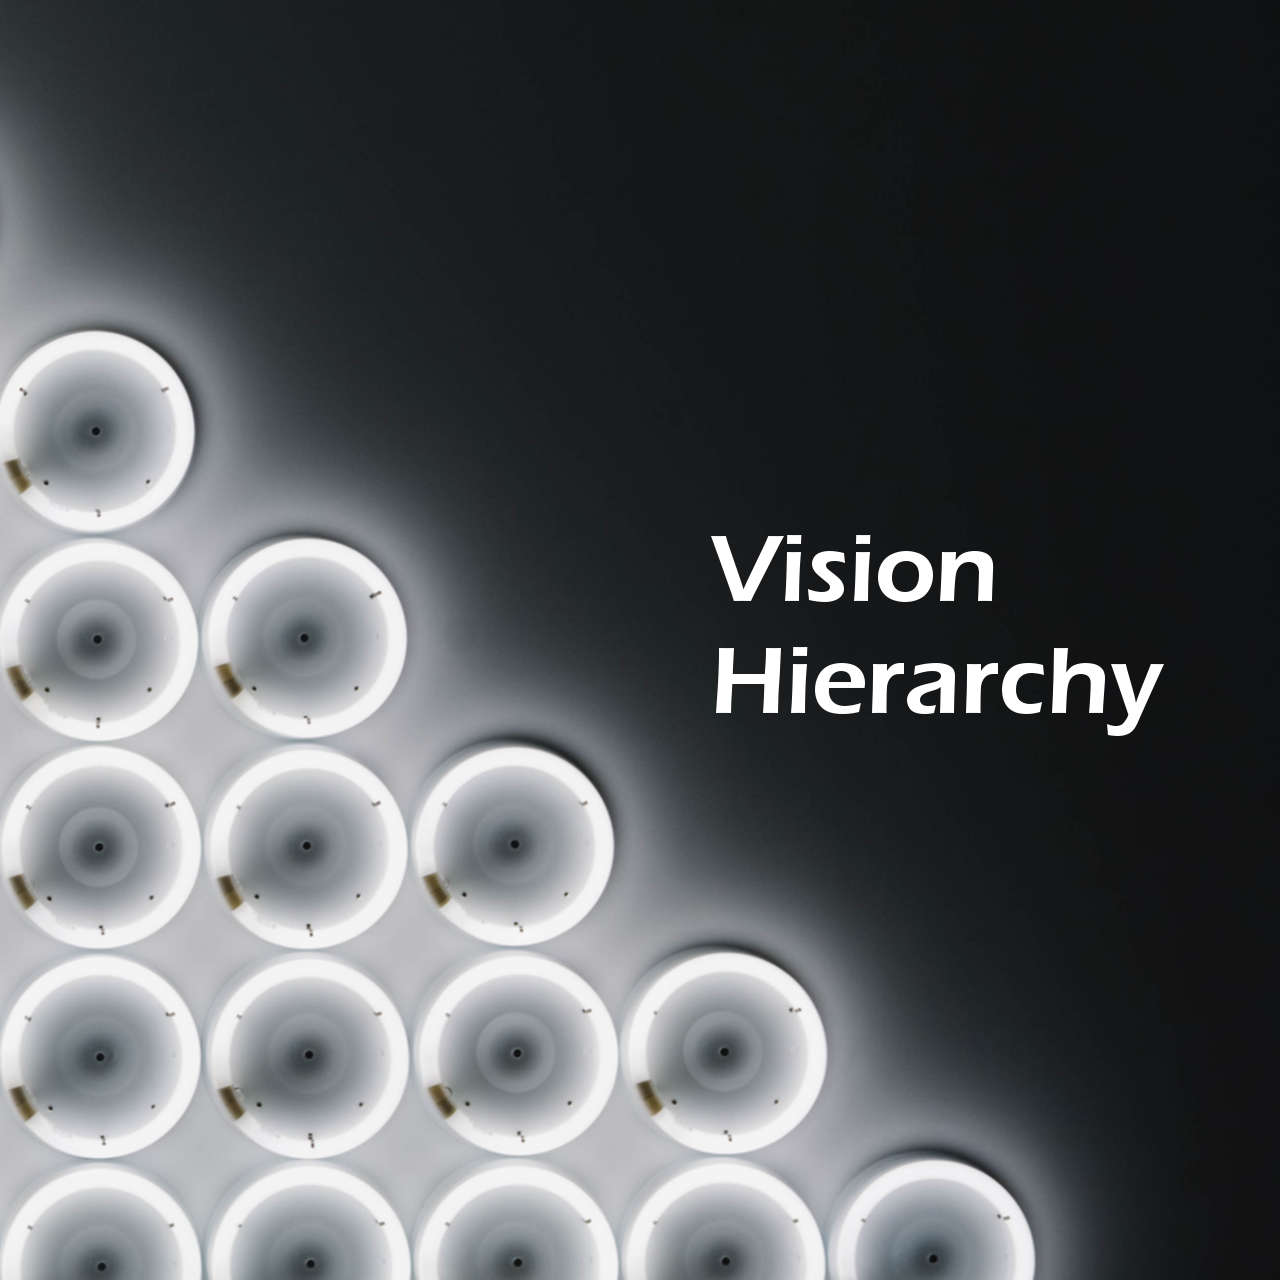 Vision HierarchyLean & Agile Organization Development | agile-od.com by Lifecycle